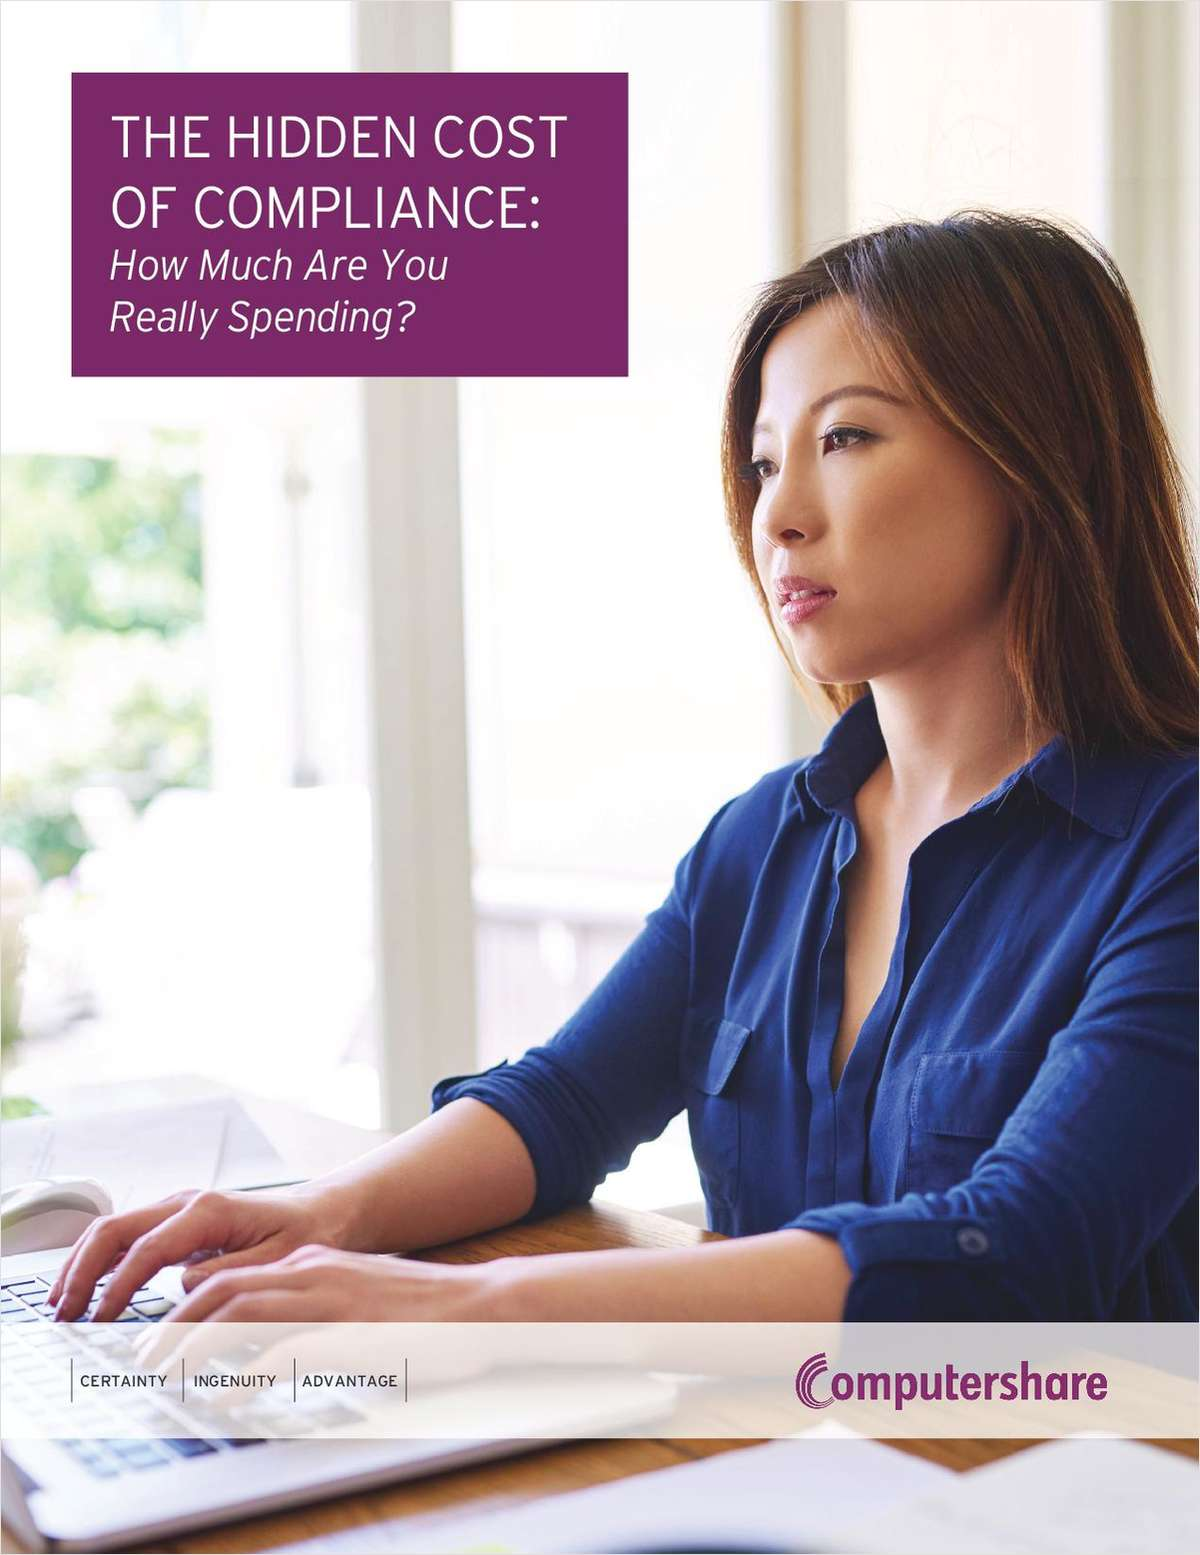 The Hidden Cost of Compliance: How Much Are You Really Spending?